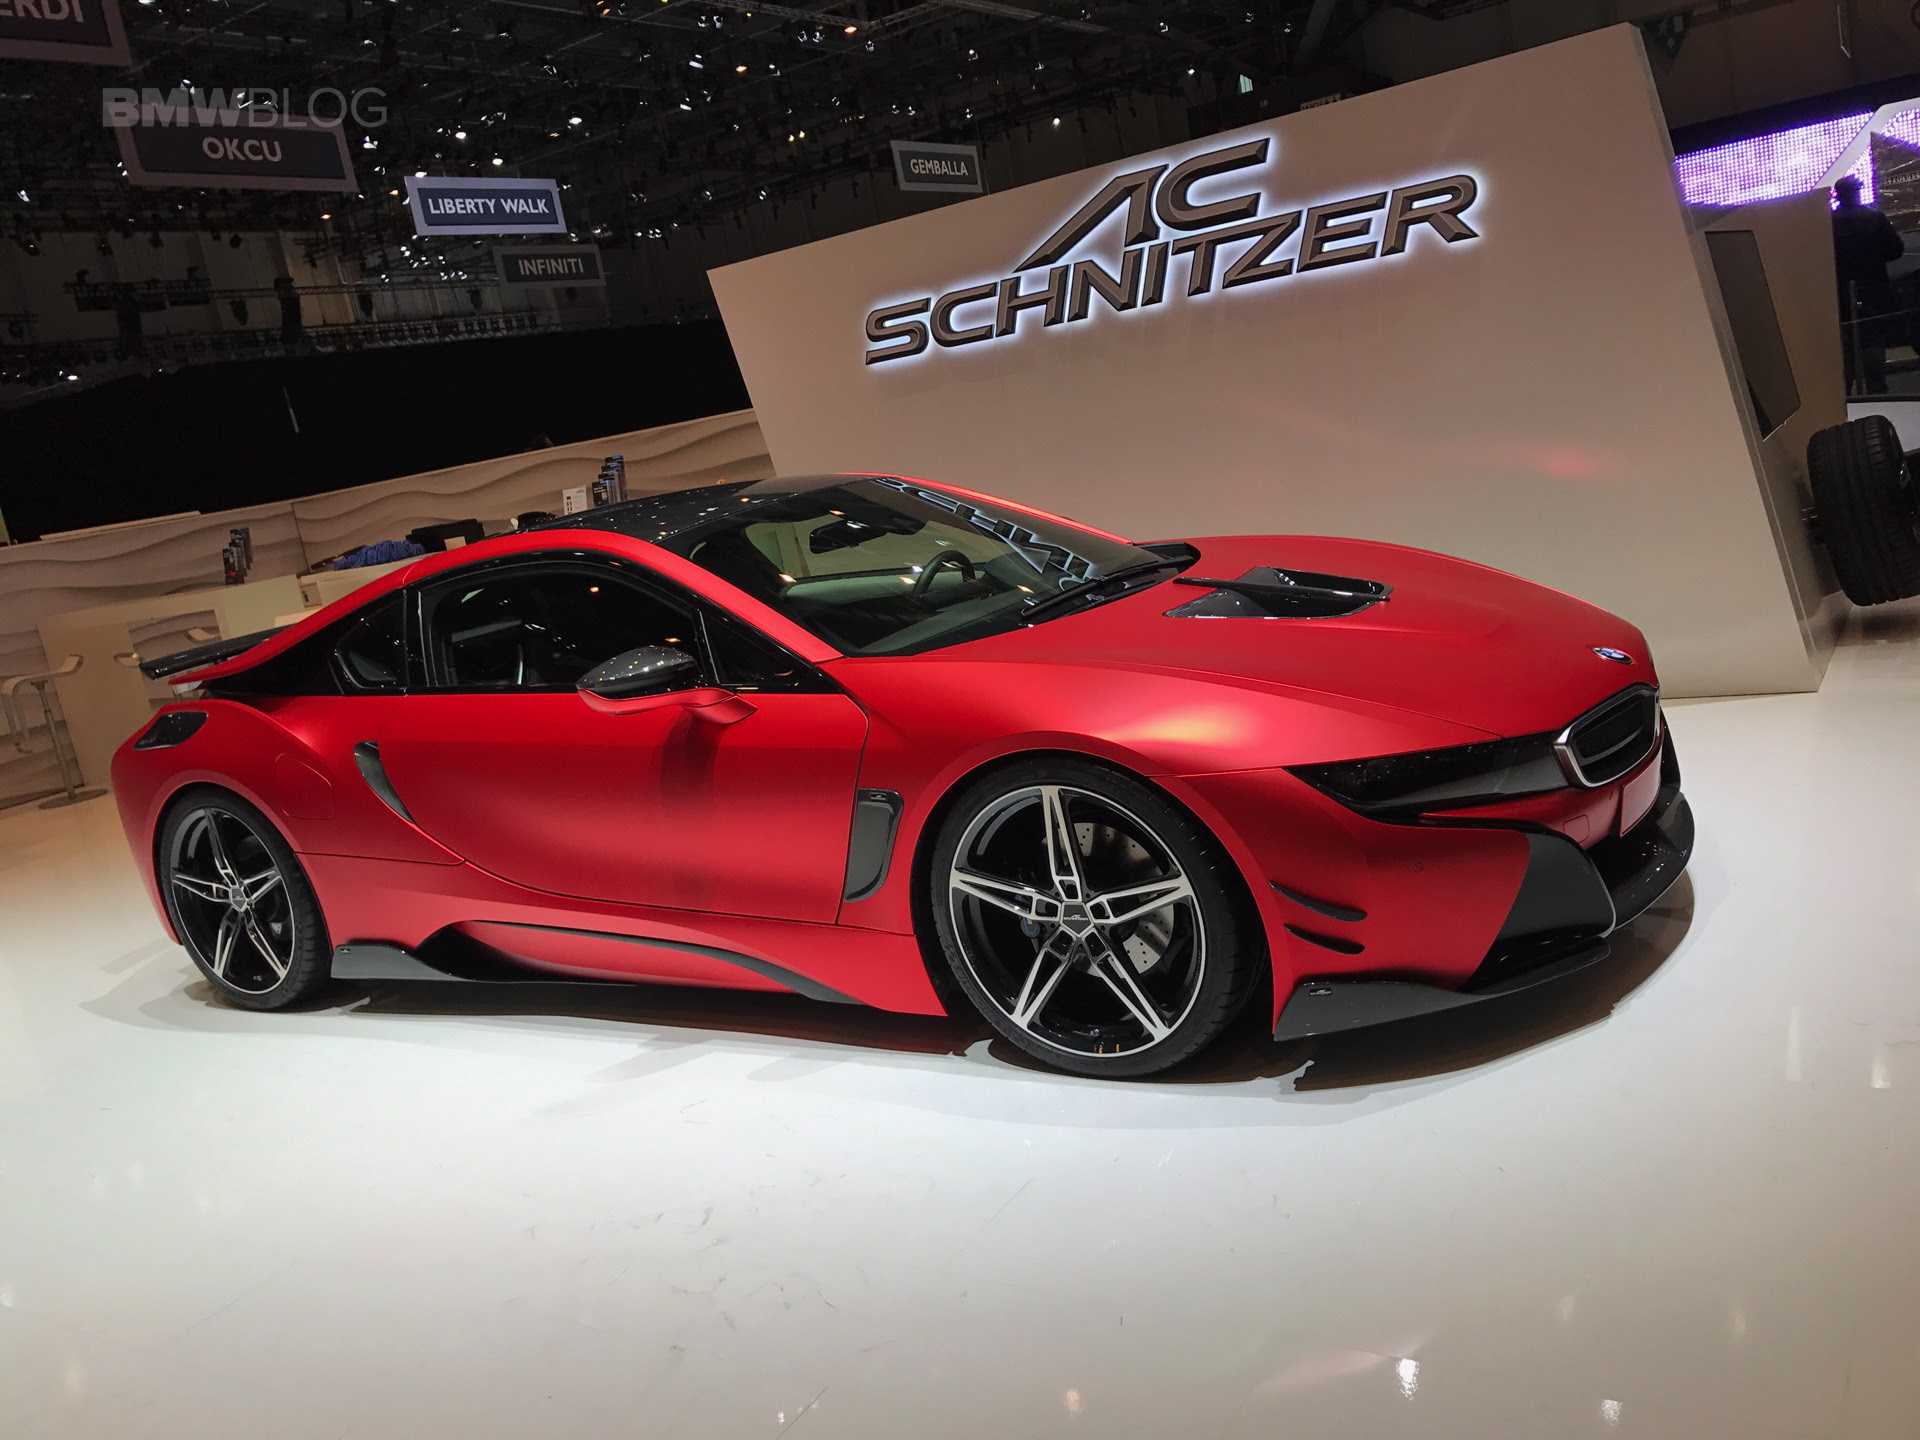 AC Schnitzer brings the BMW i8 and M240i at the 2017 Geneva Motor Show